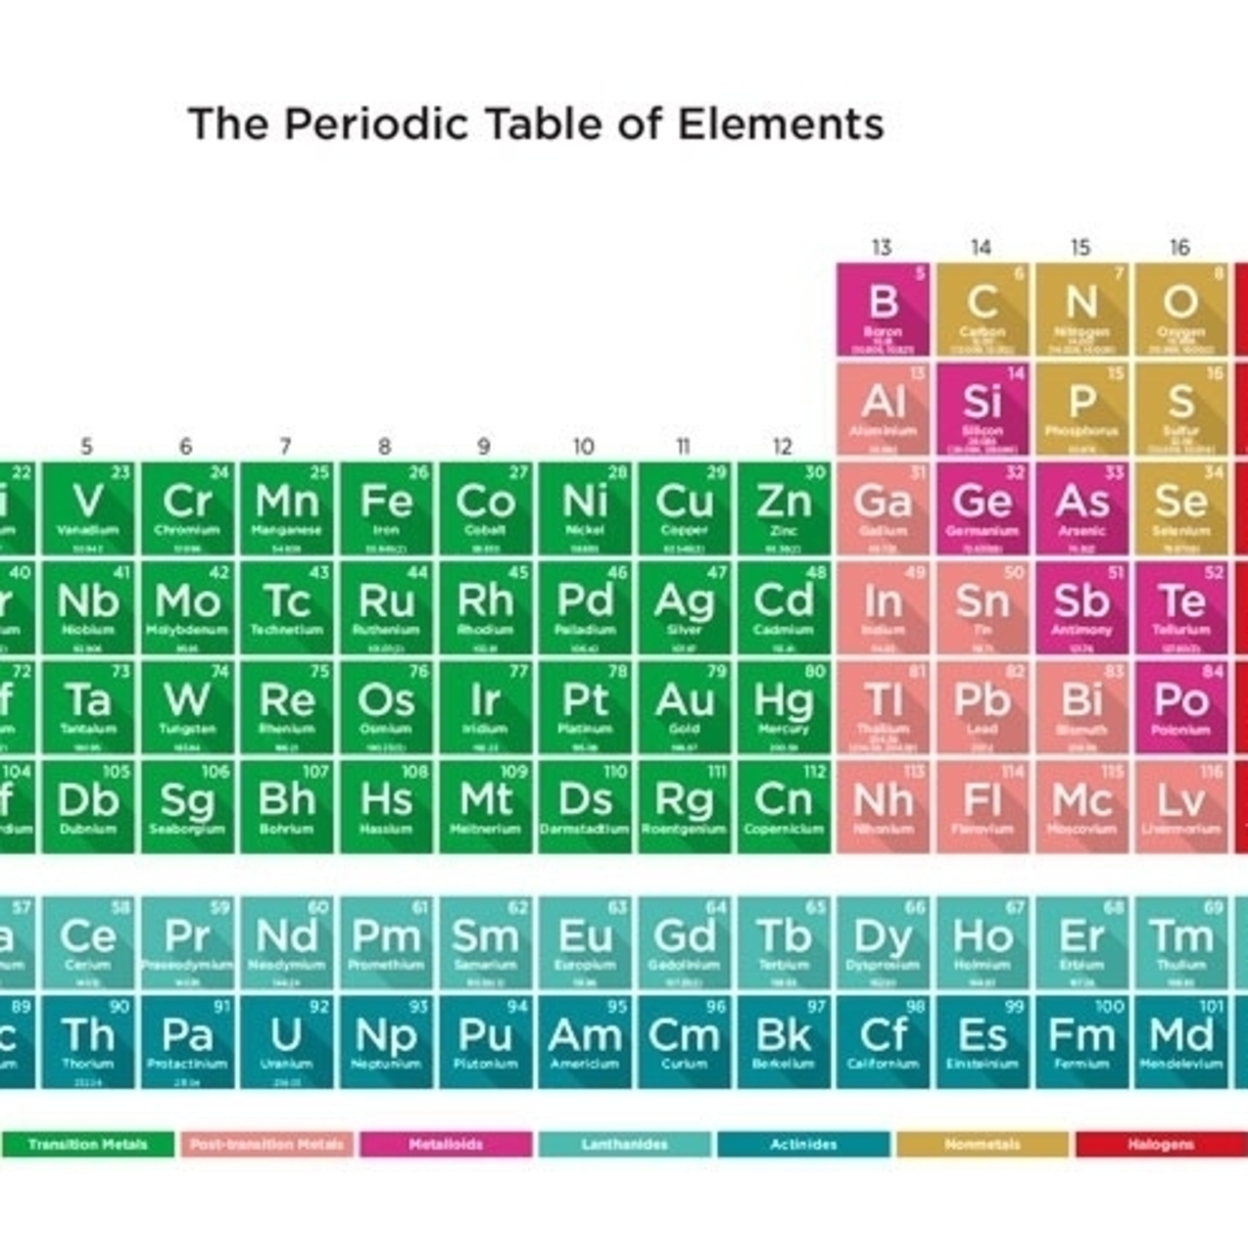 Periodic Table Of Elements 17 Laminated Poster Print (34 x ...